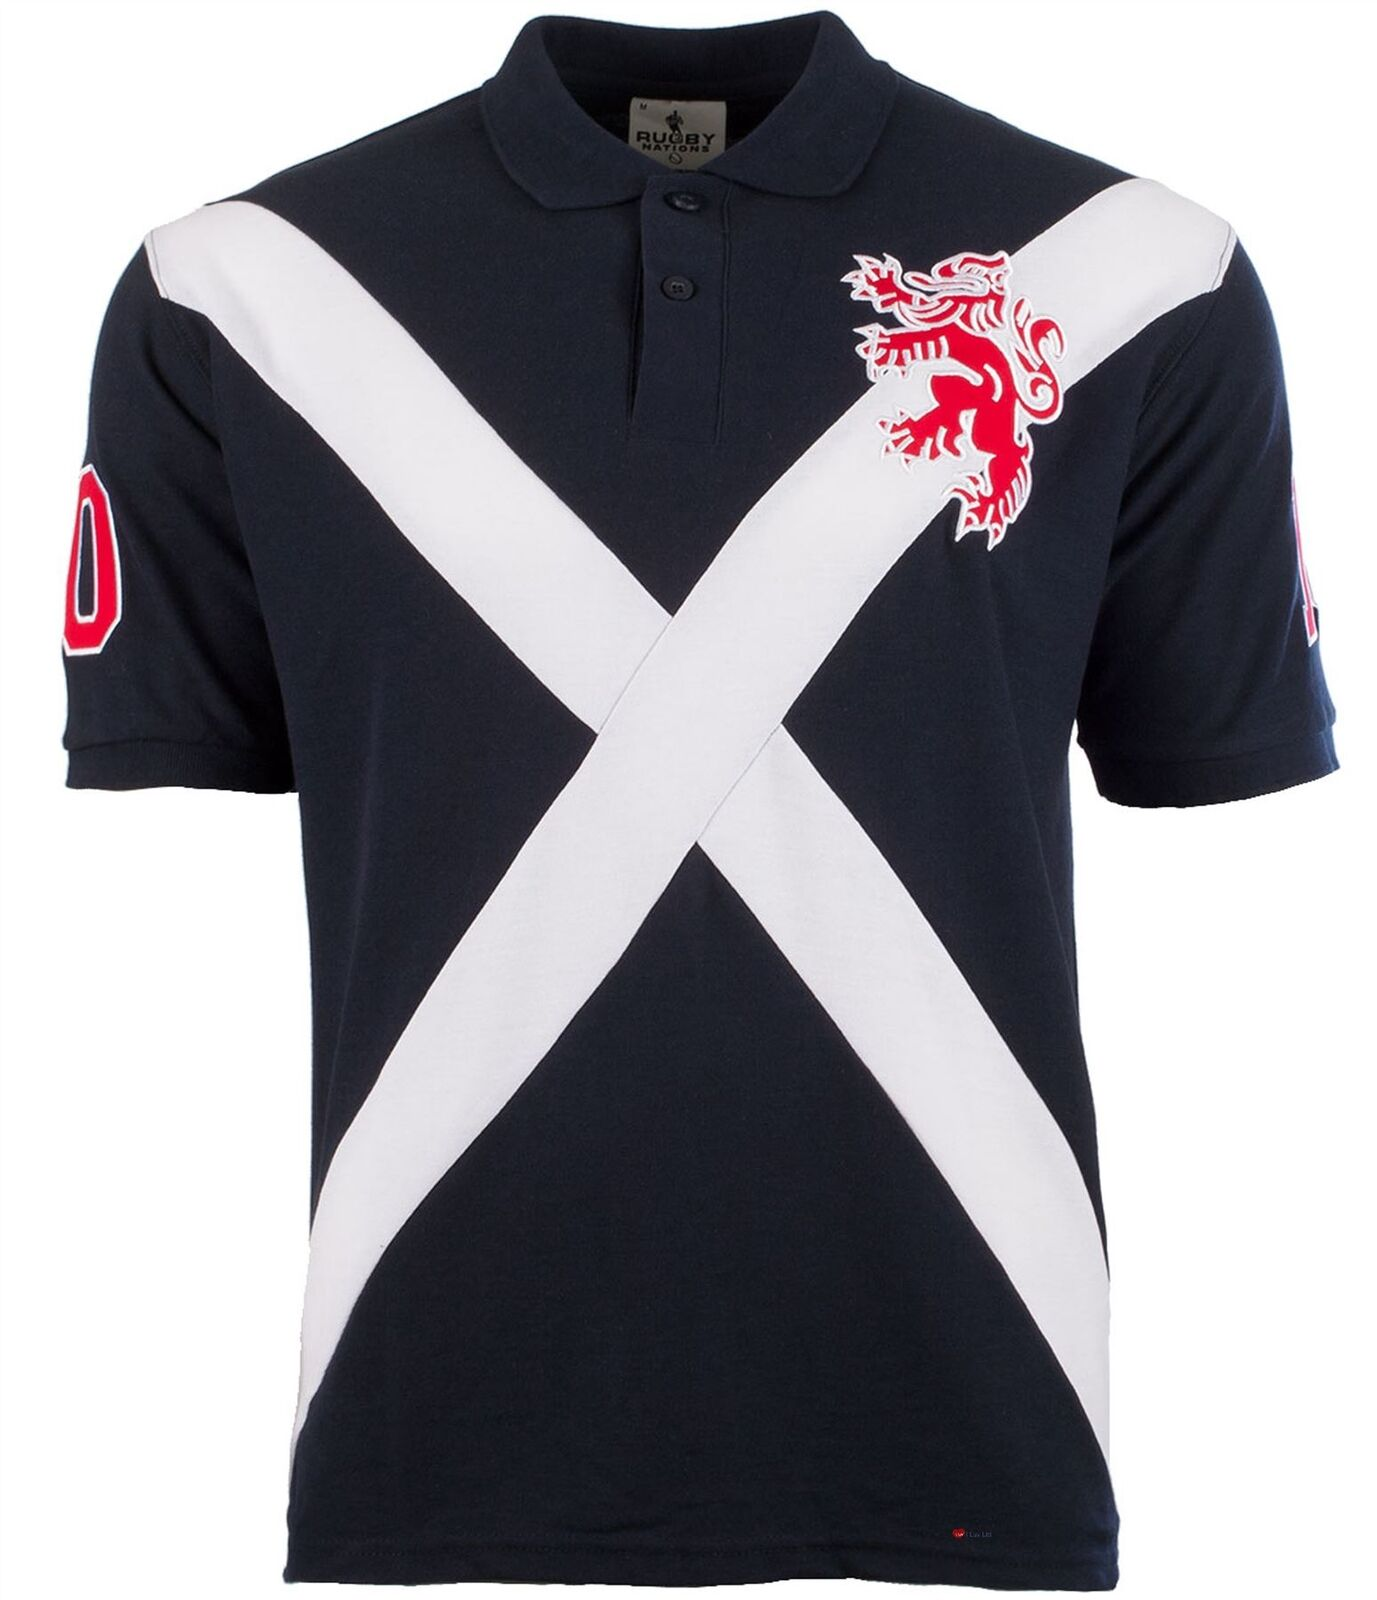 Gents Polo Shirt In Saltire With Small Rampant Lion Design In Navy Größe X-Large